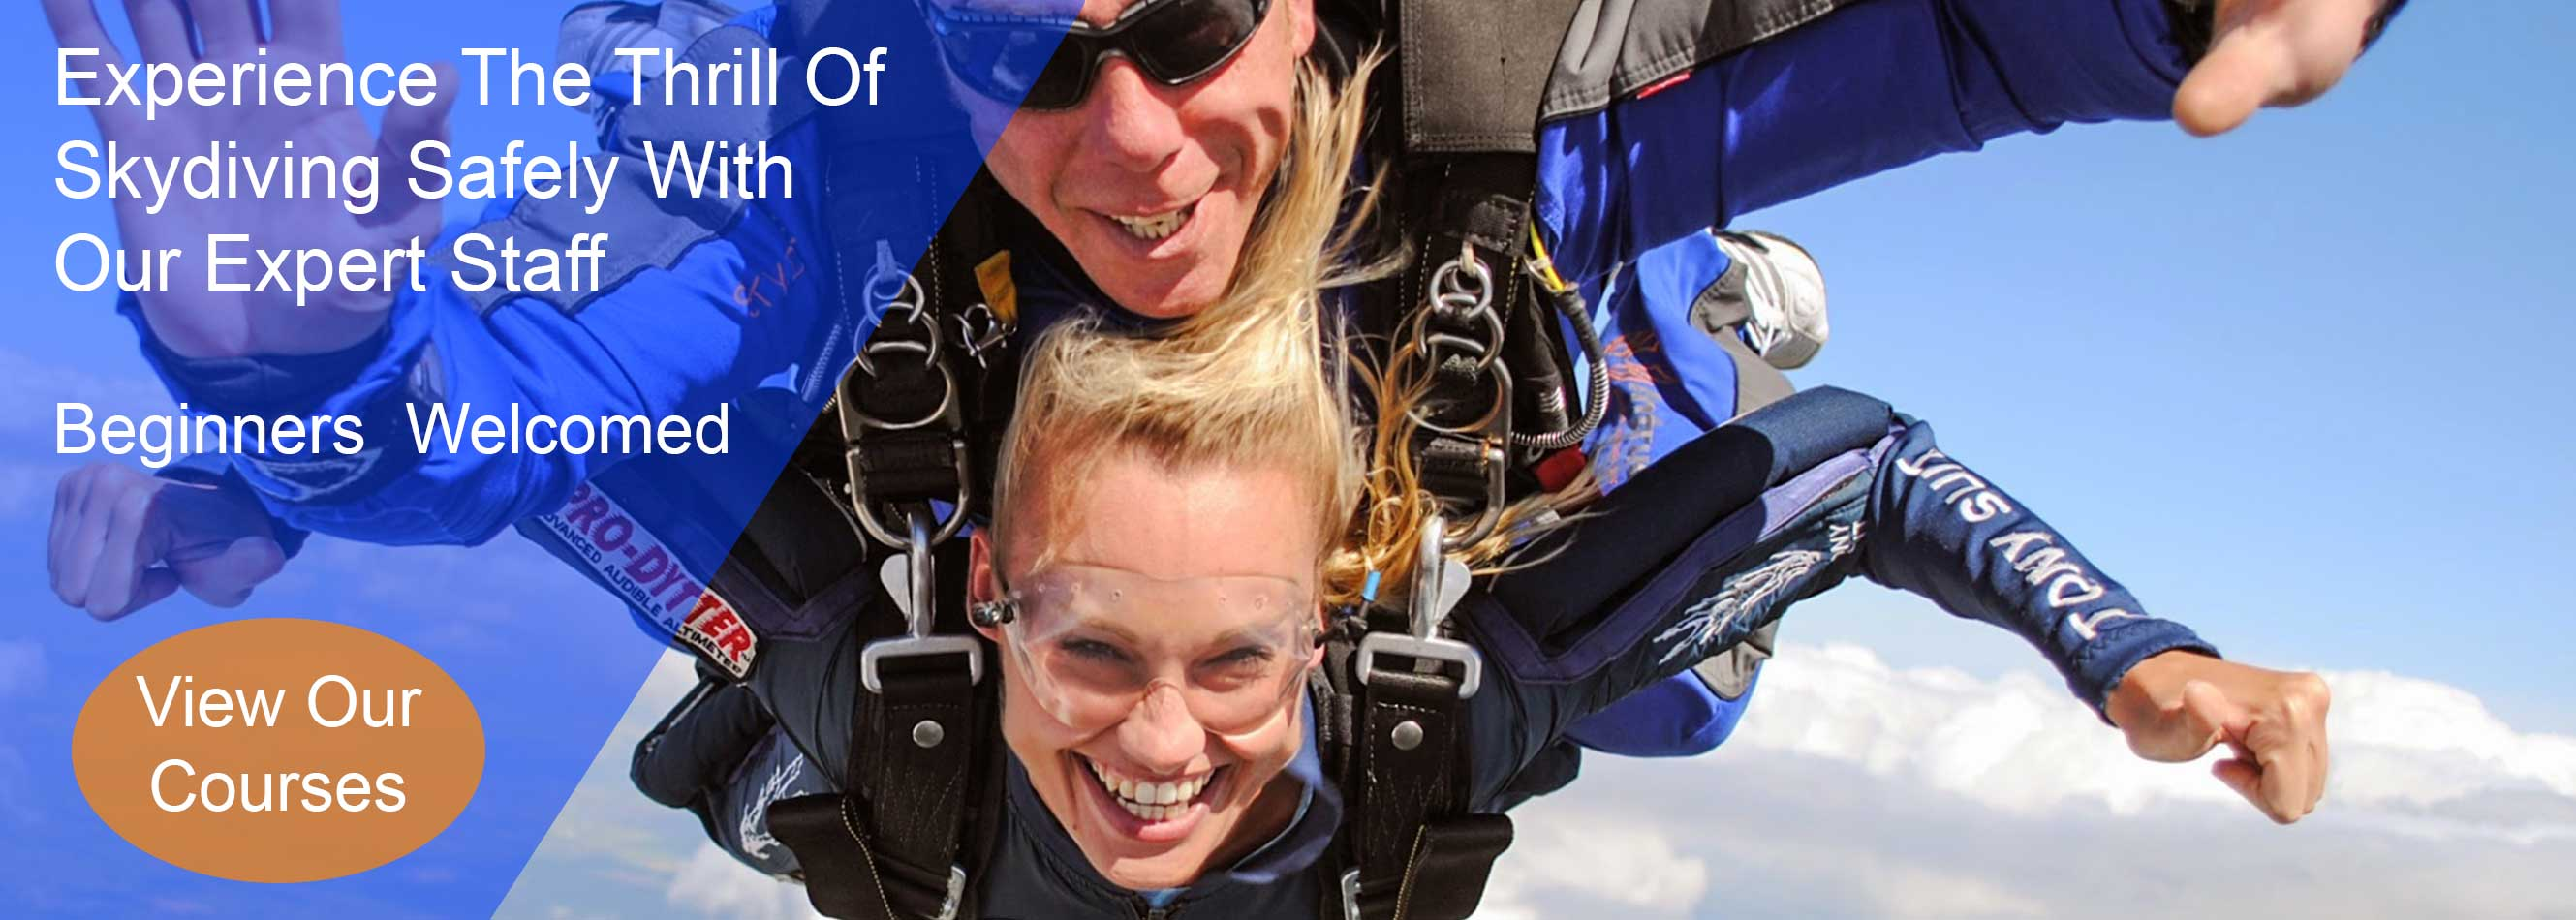 Experience the thrill of skydiving safely with our expert staff at Skydive.ie and the Irish Parachute Club